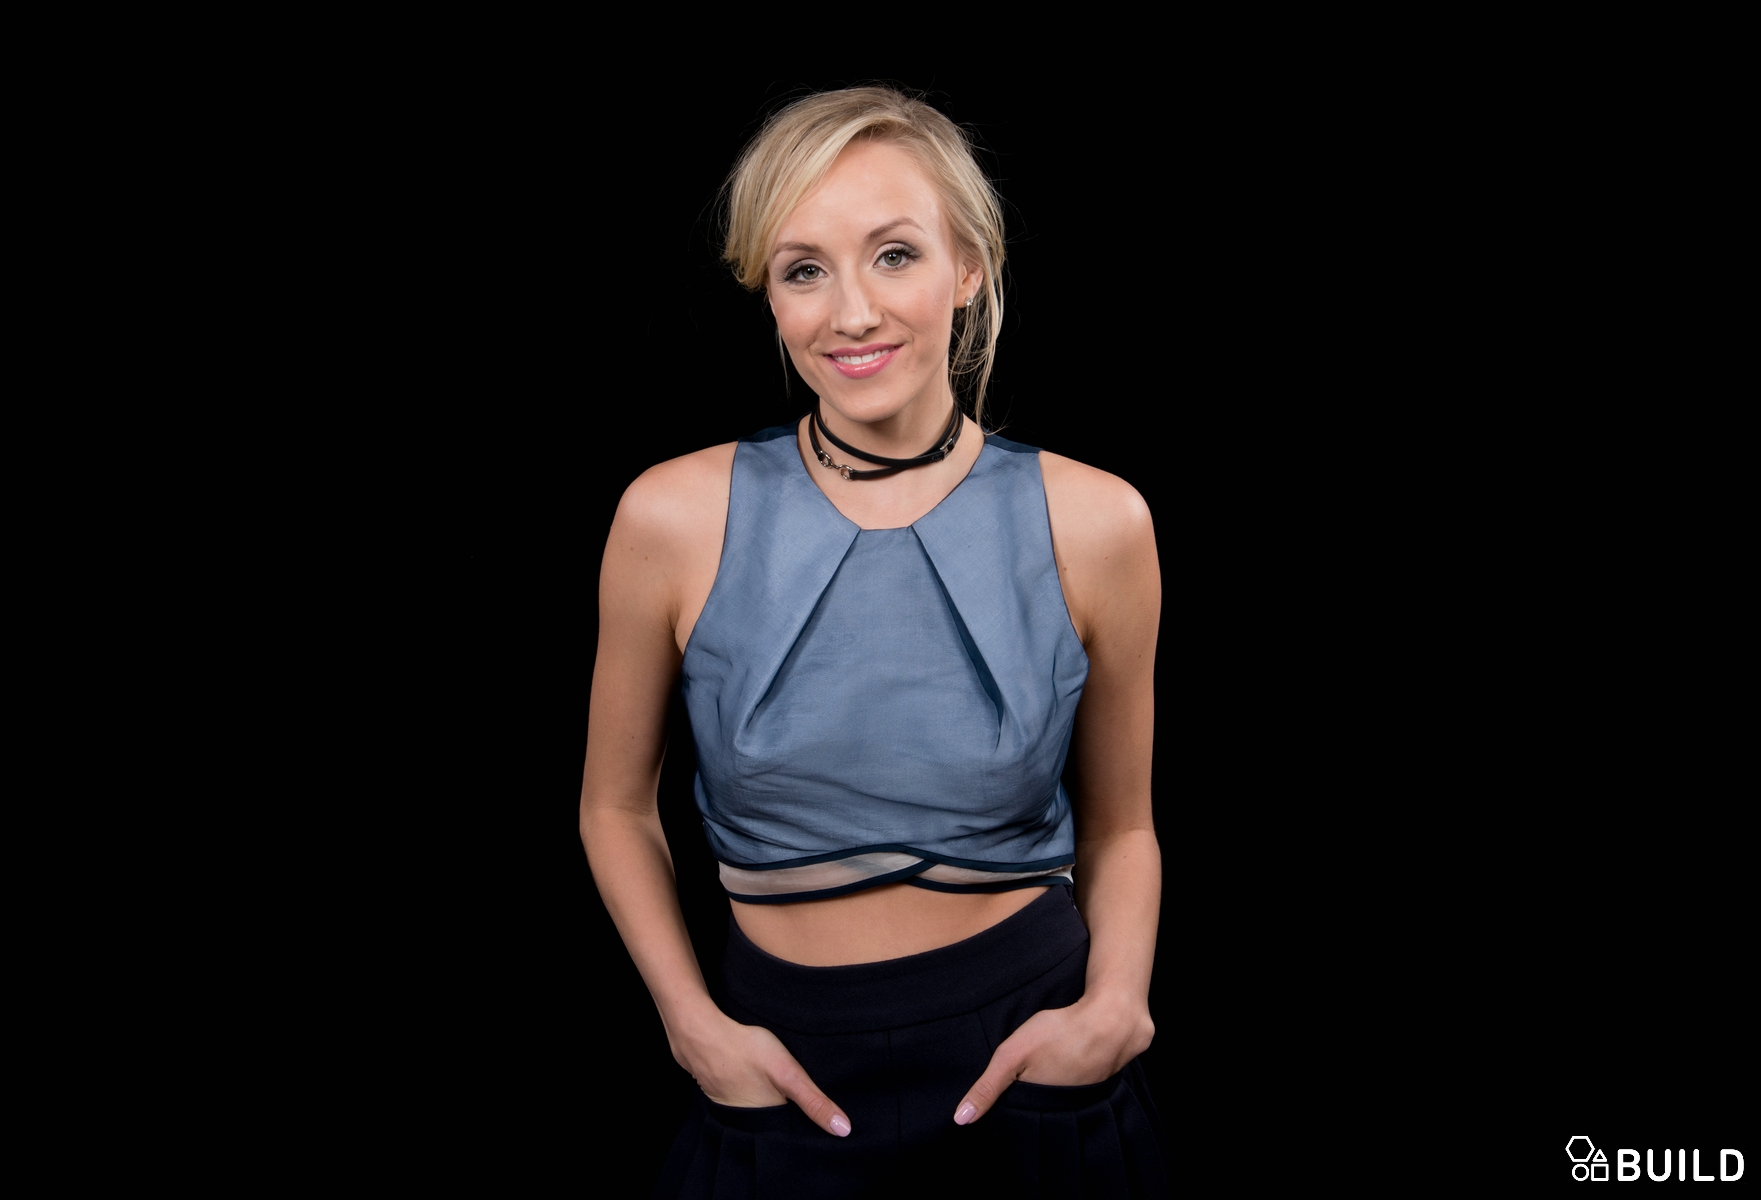 Nastia Liukin visits AOL Hq for Build on April 13, 2016 in New York. Photos by Noam Galai